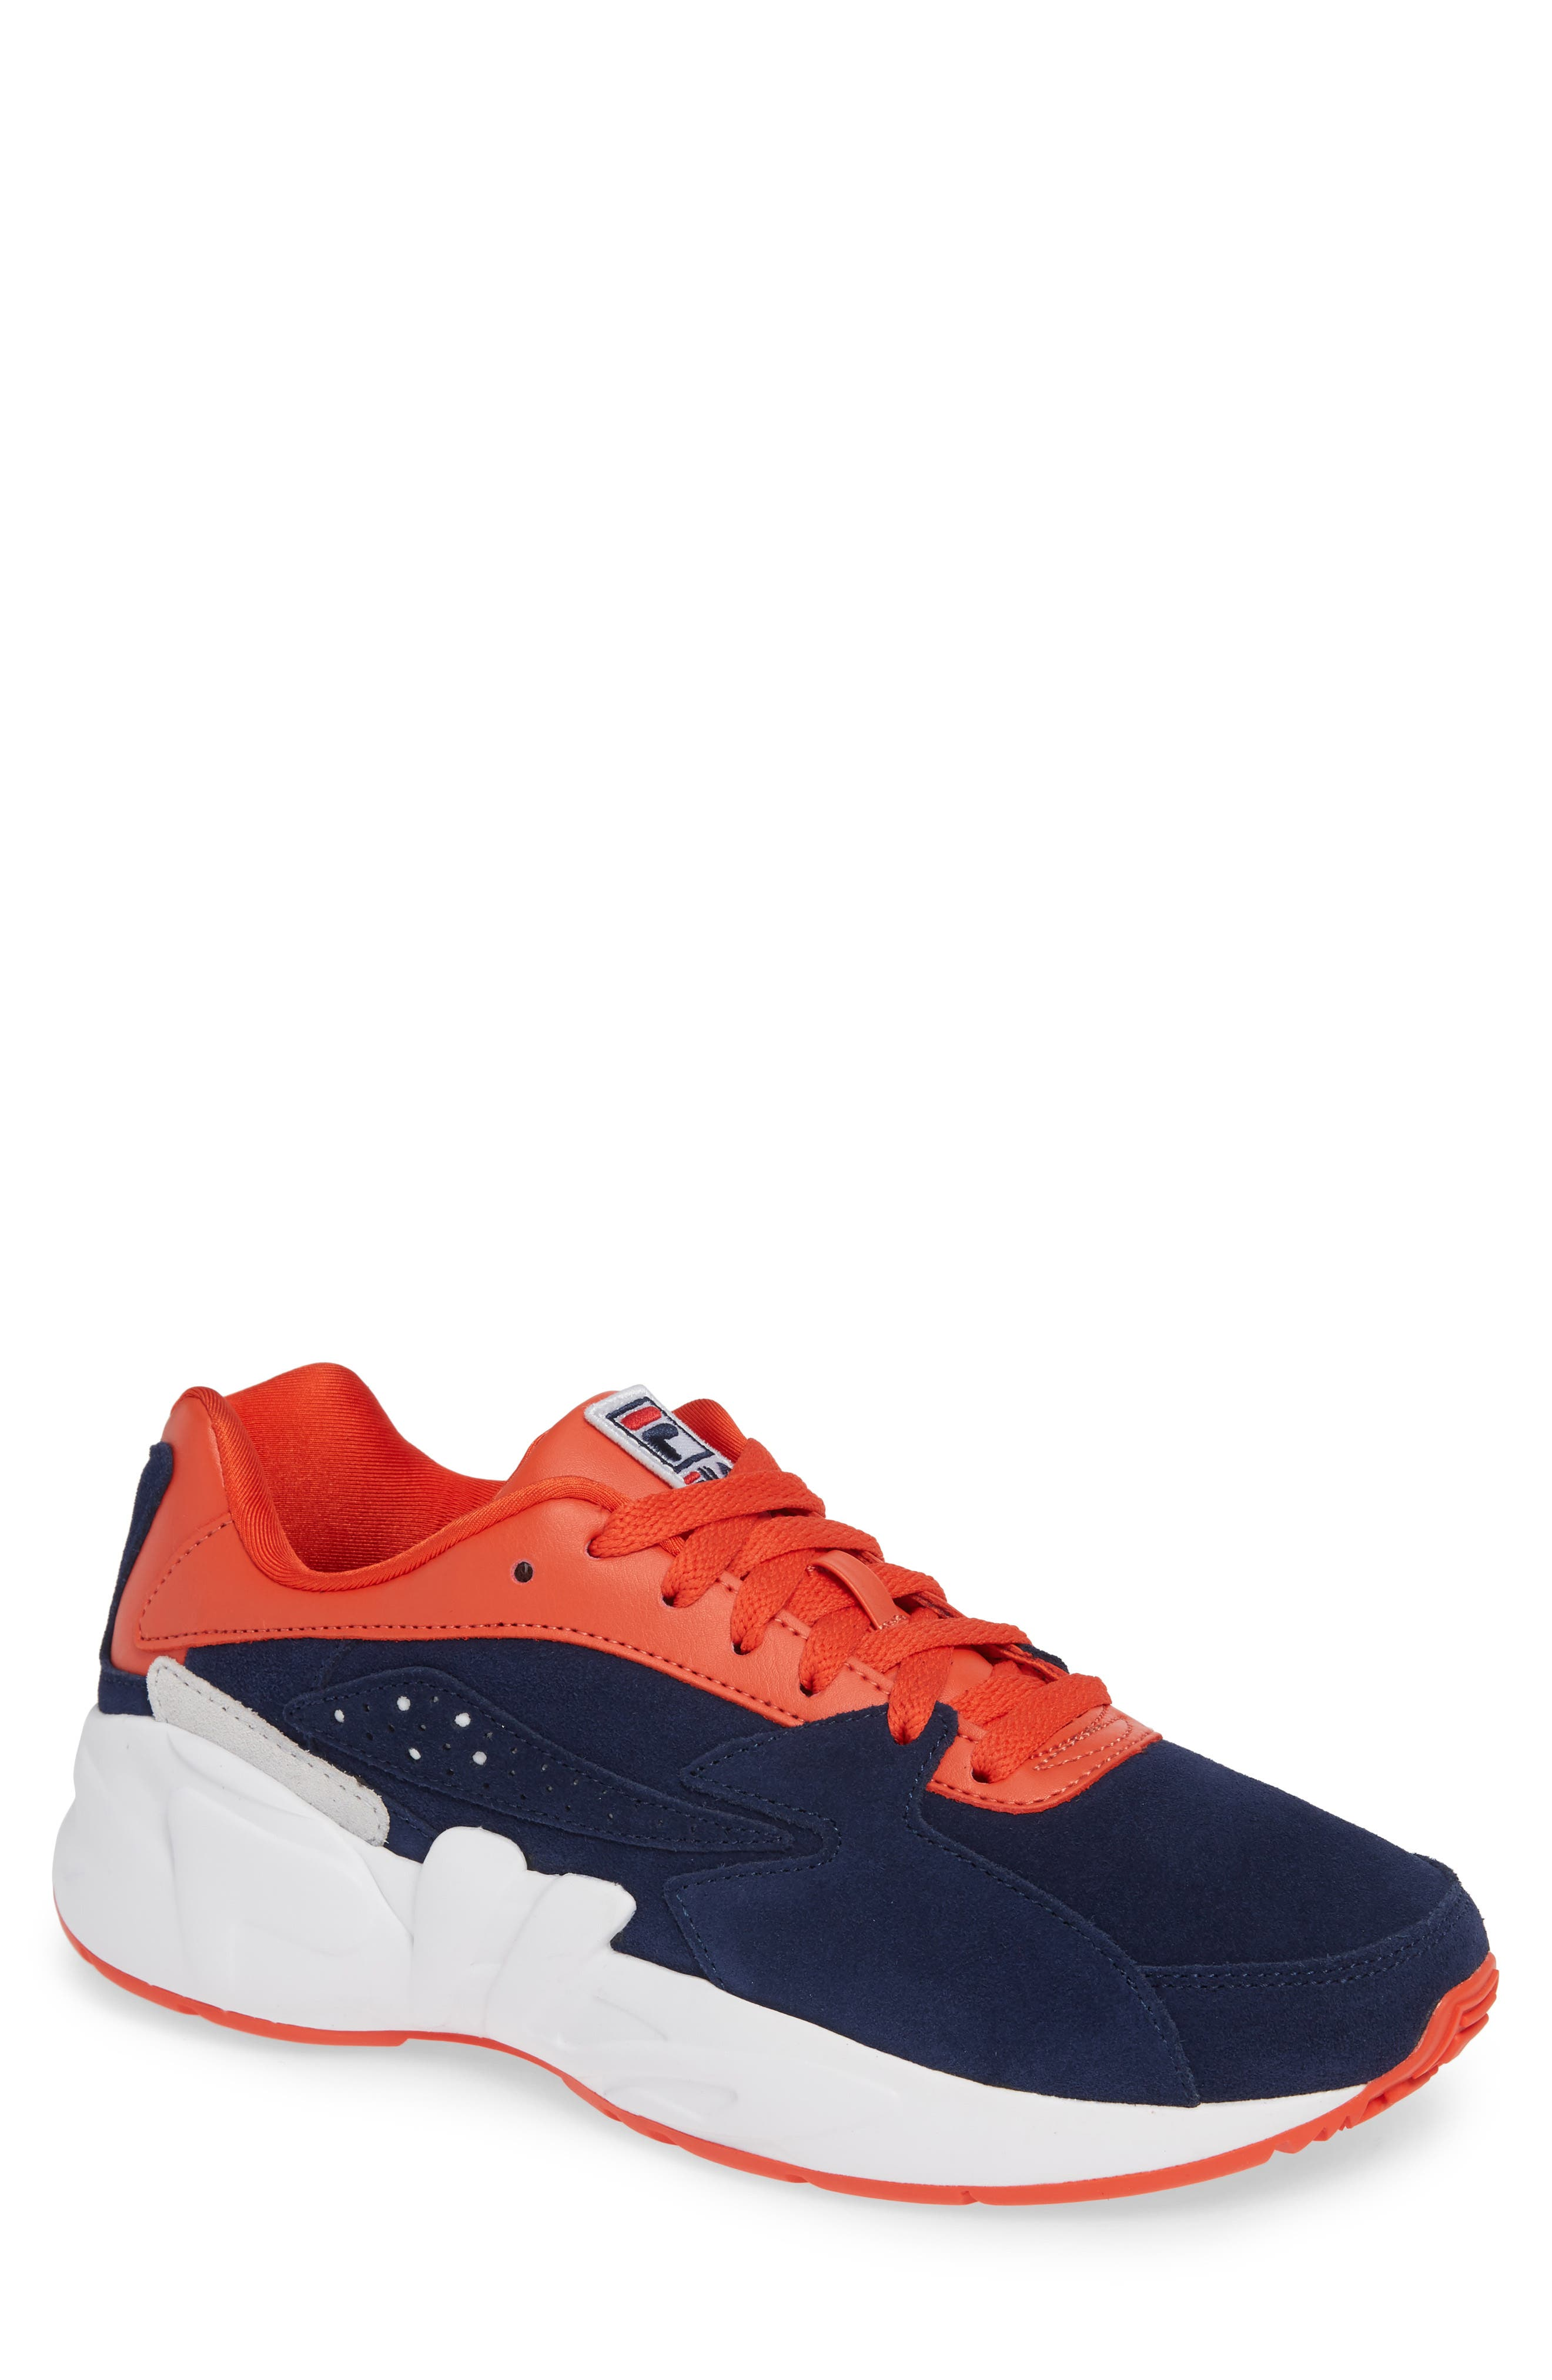 Mindblower Sneaker,                         Main,                         color, NAVY/ WHITE/ RED